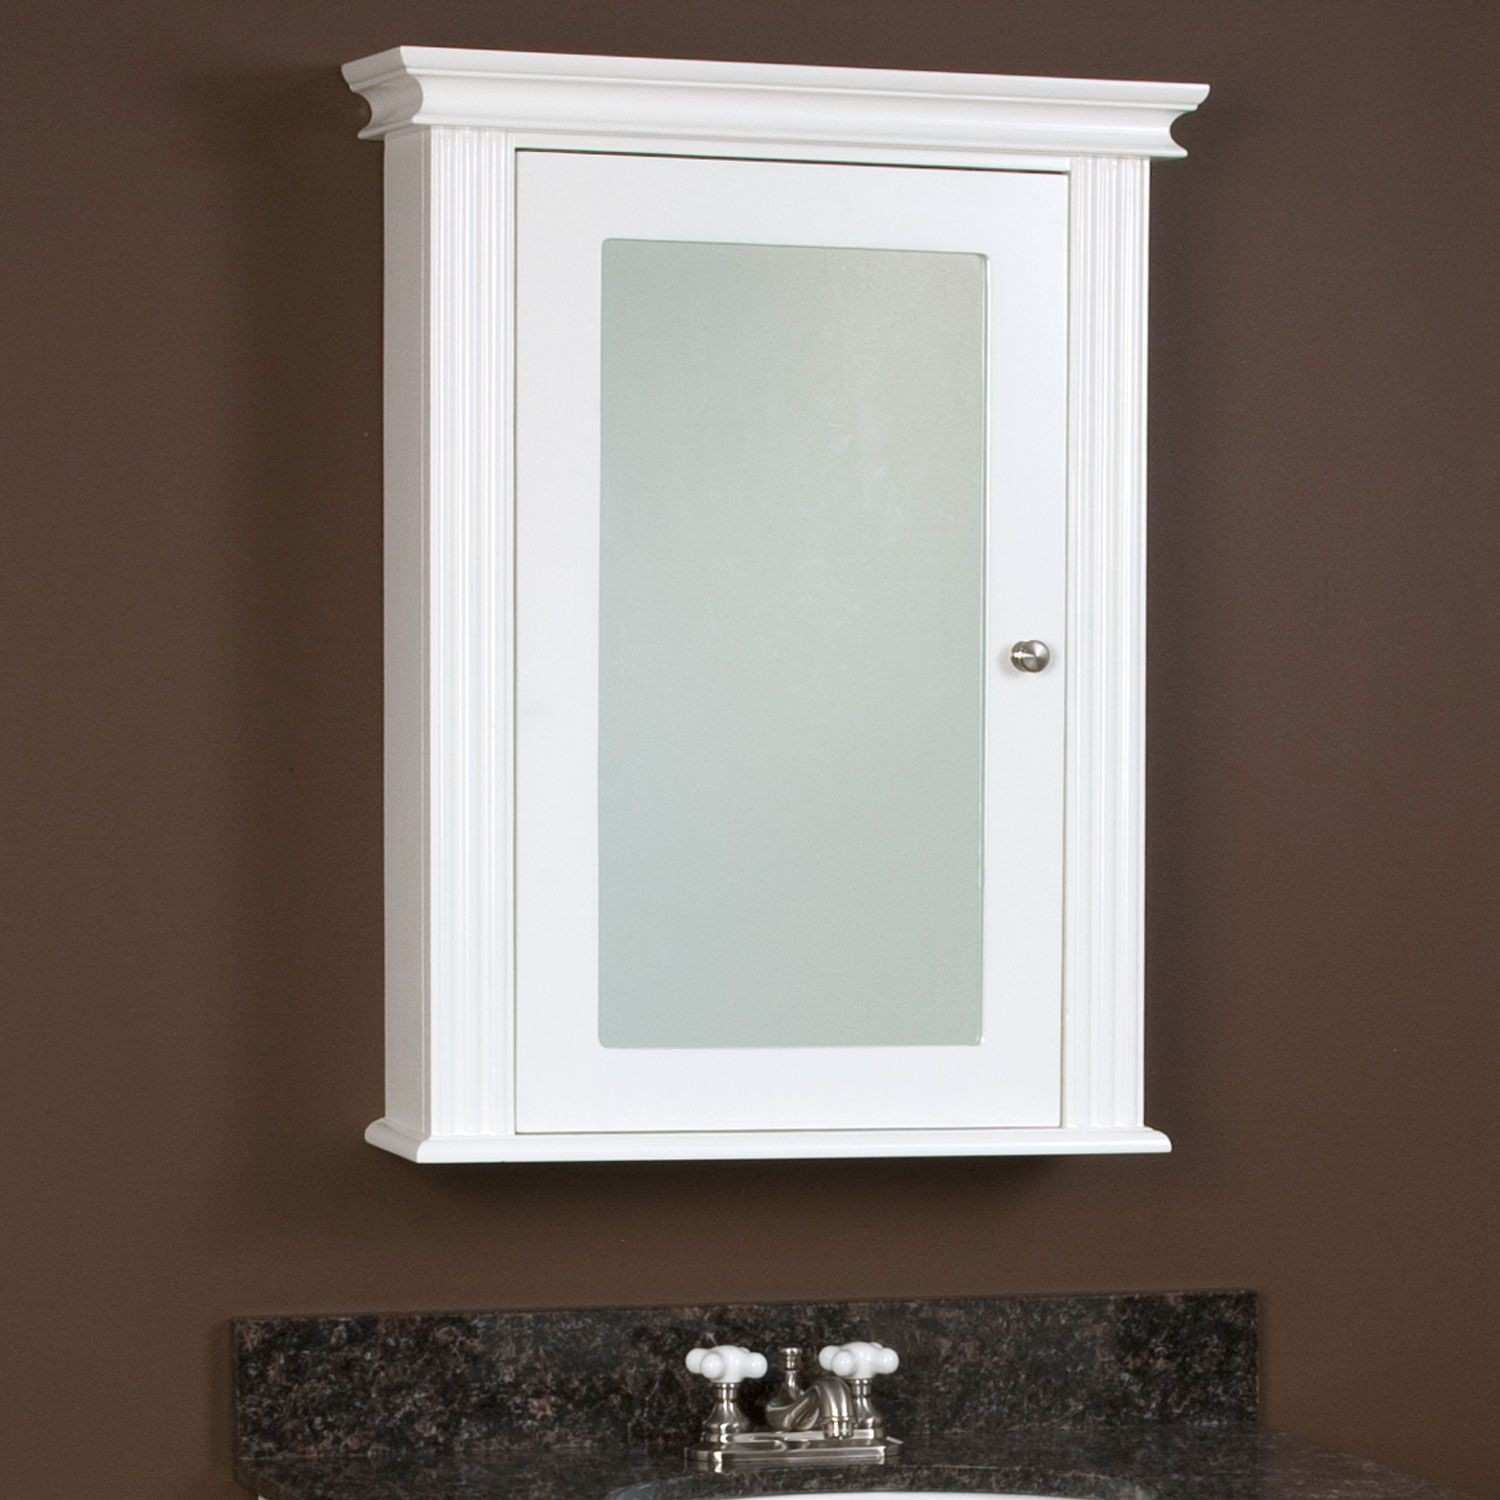 Mesmerizing Extendable Bathroom Mirror Best Mirror For Bathroom